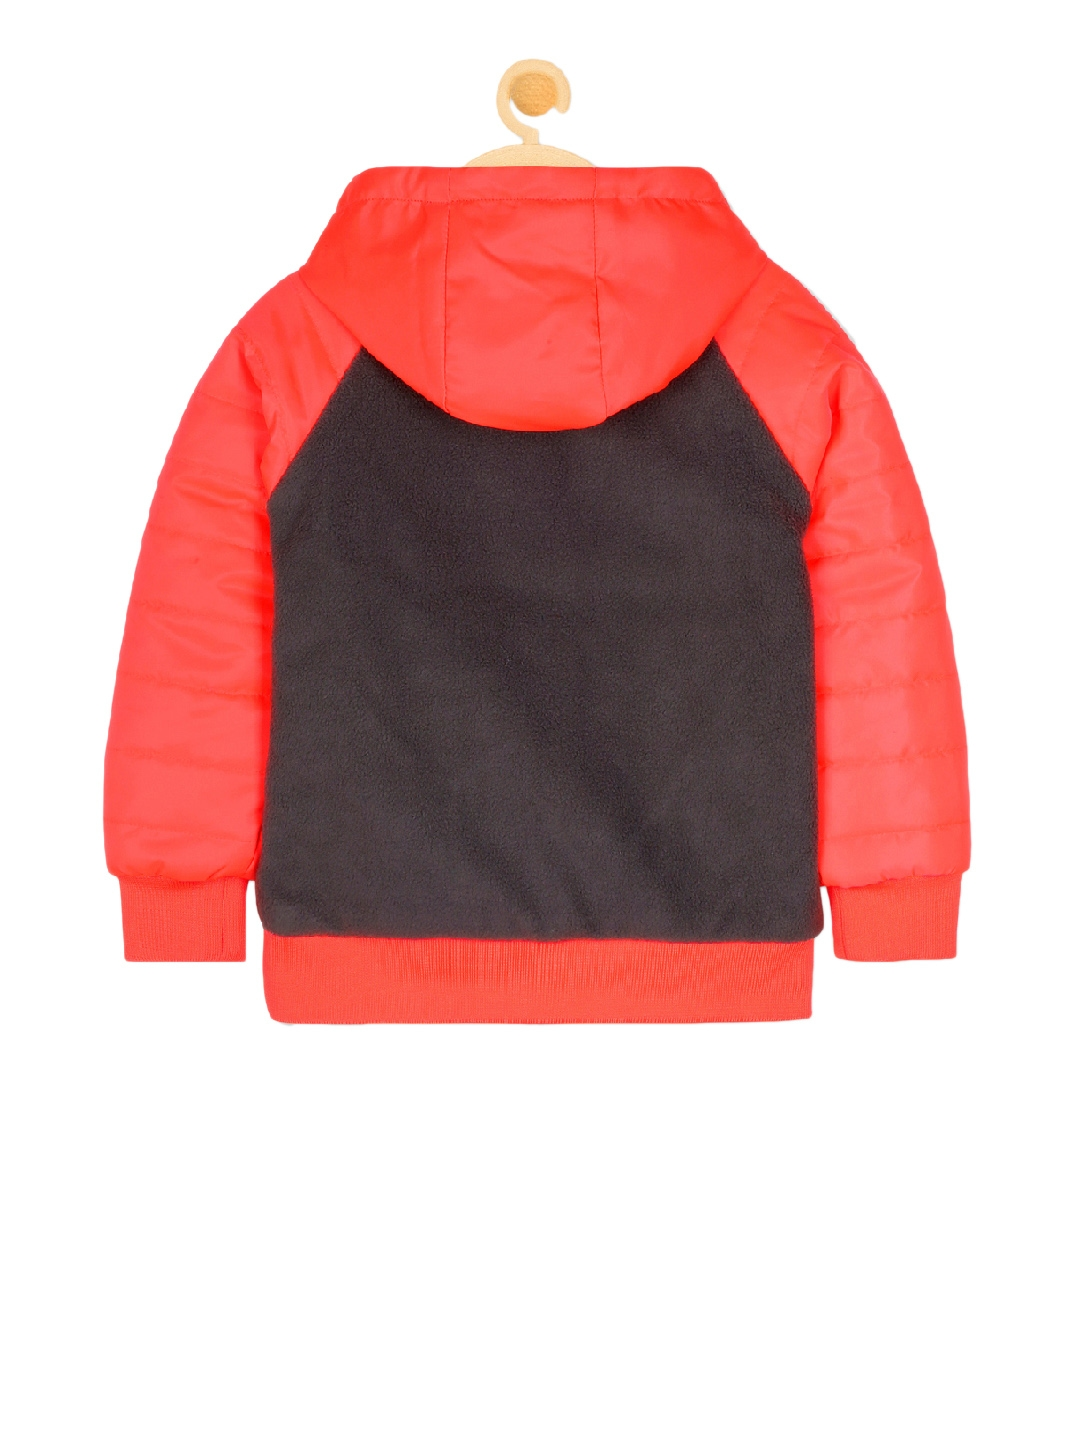 Buy Cherry Crumble Unisex Red Colourblocked Open Front Jacket